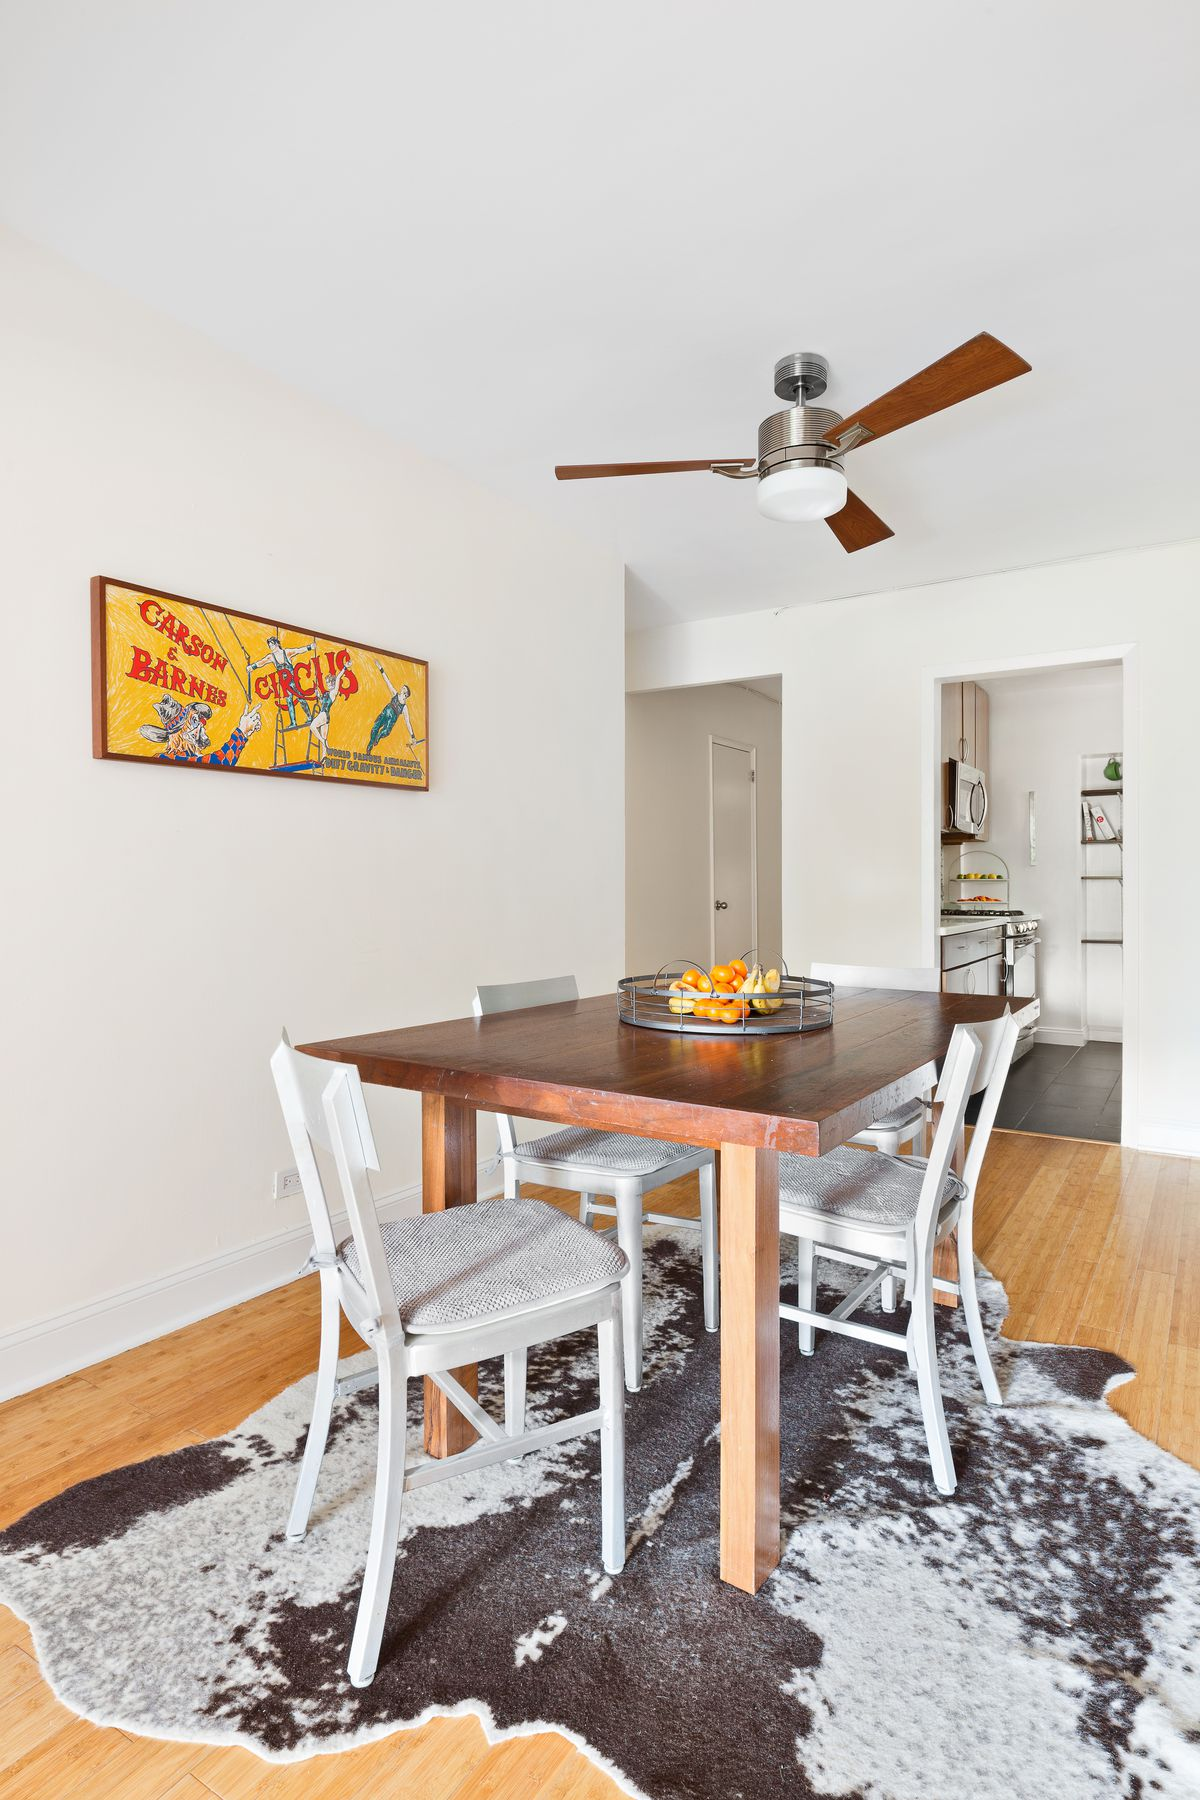 A dining area with a ceiling fan, a framed poster on the wall, a rug, a wooden table, and white chairs.